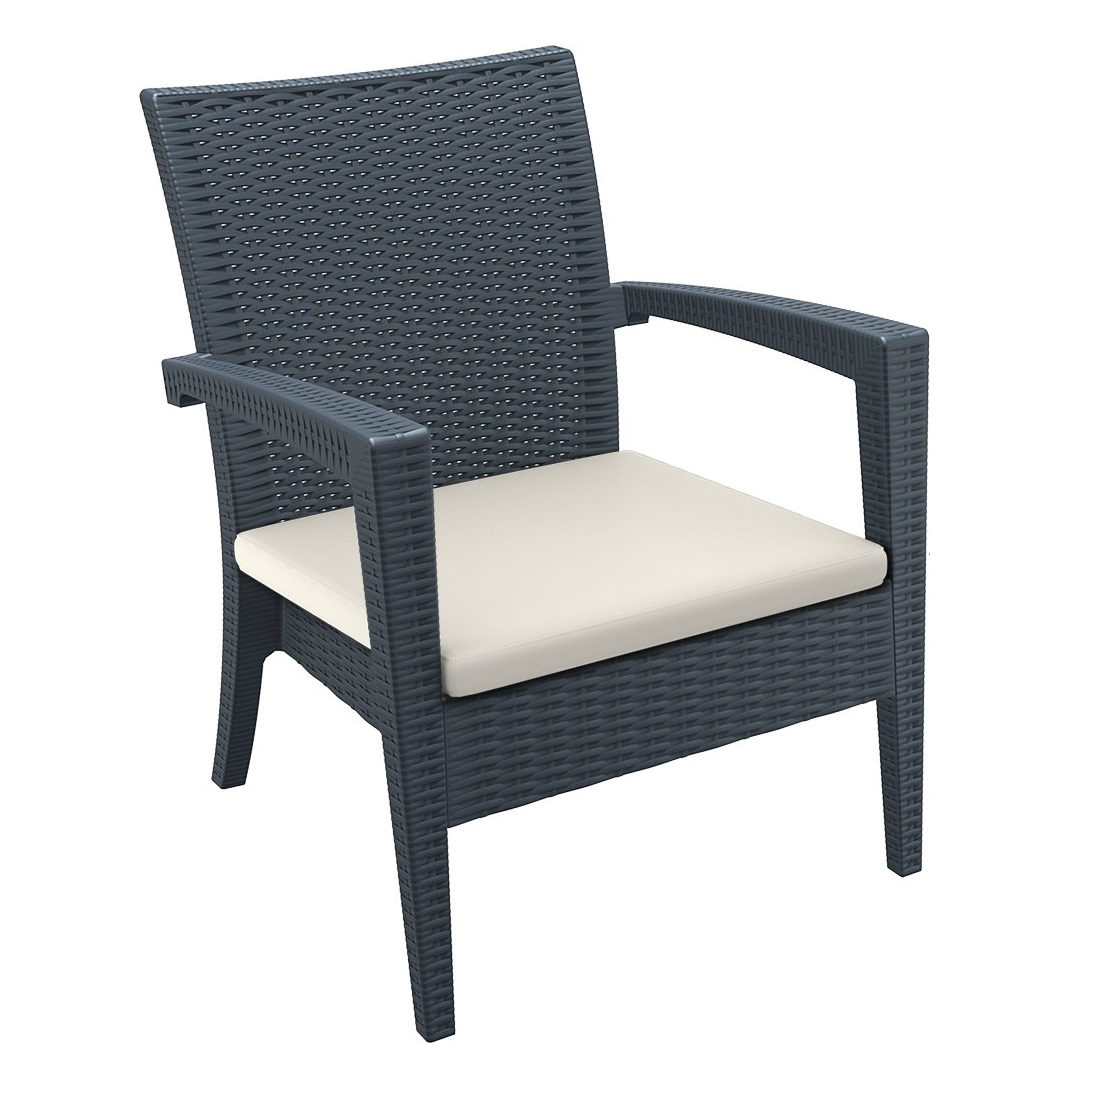 Tequila Lounge Armchair Anthracite With Cushion